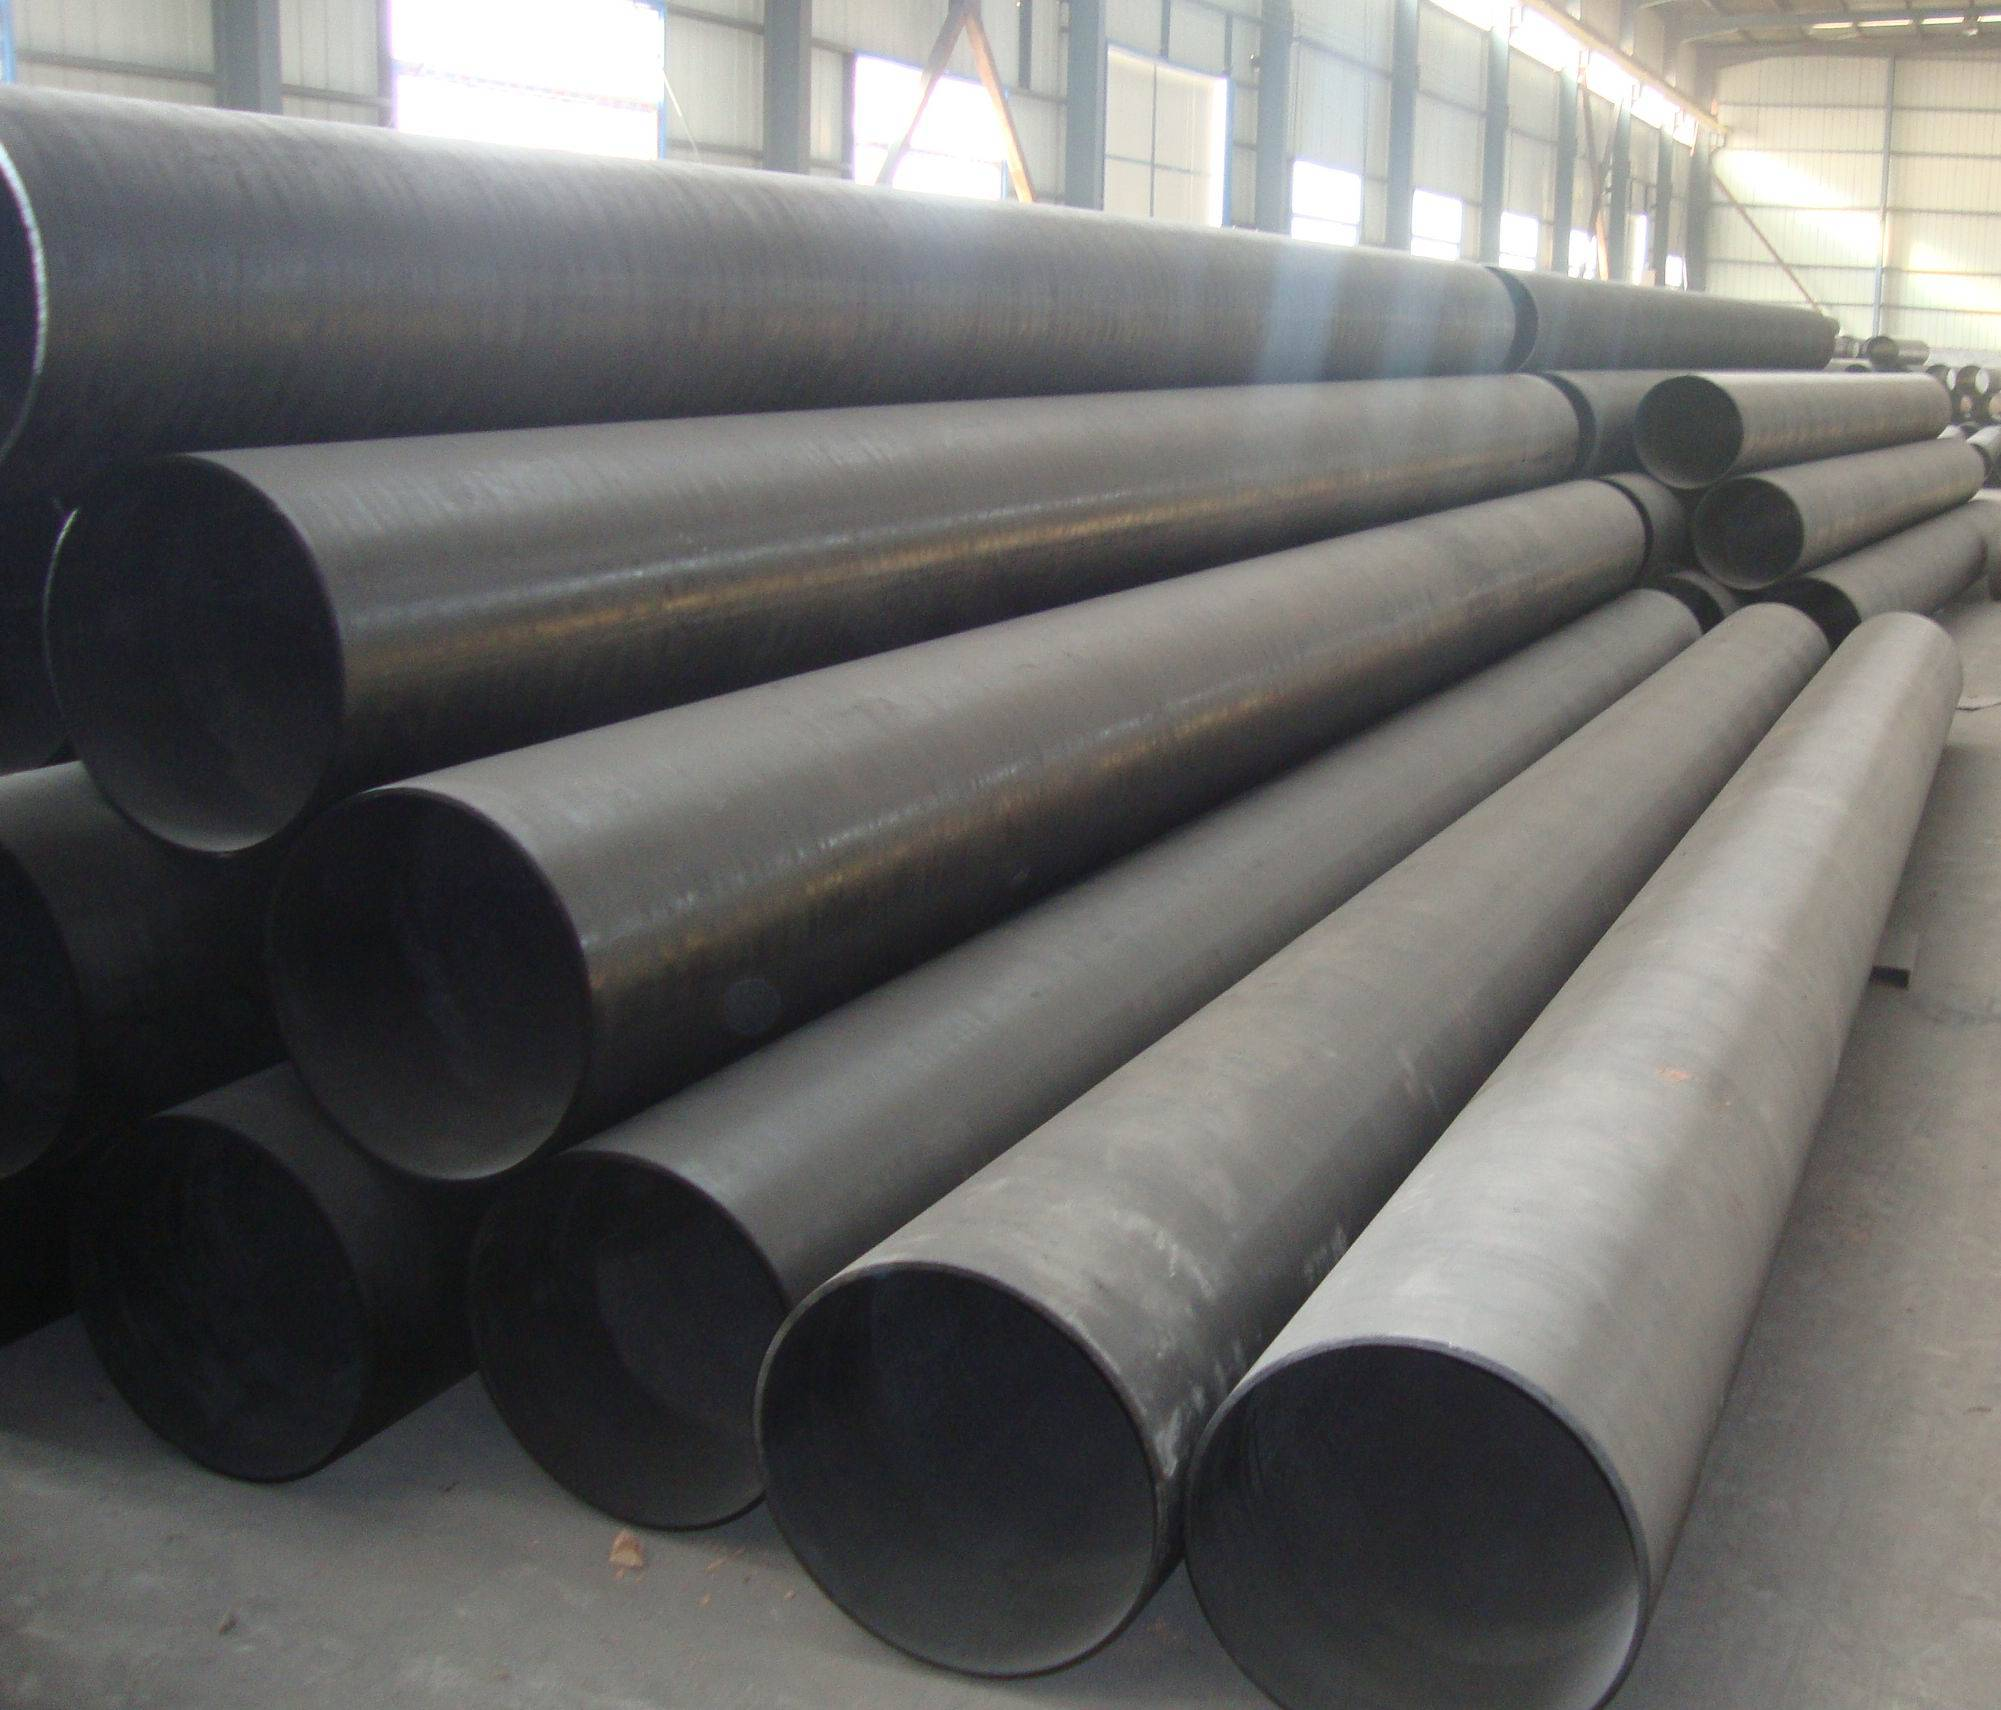 astm a35 carbon steel pipe schedule 80